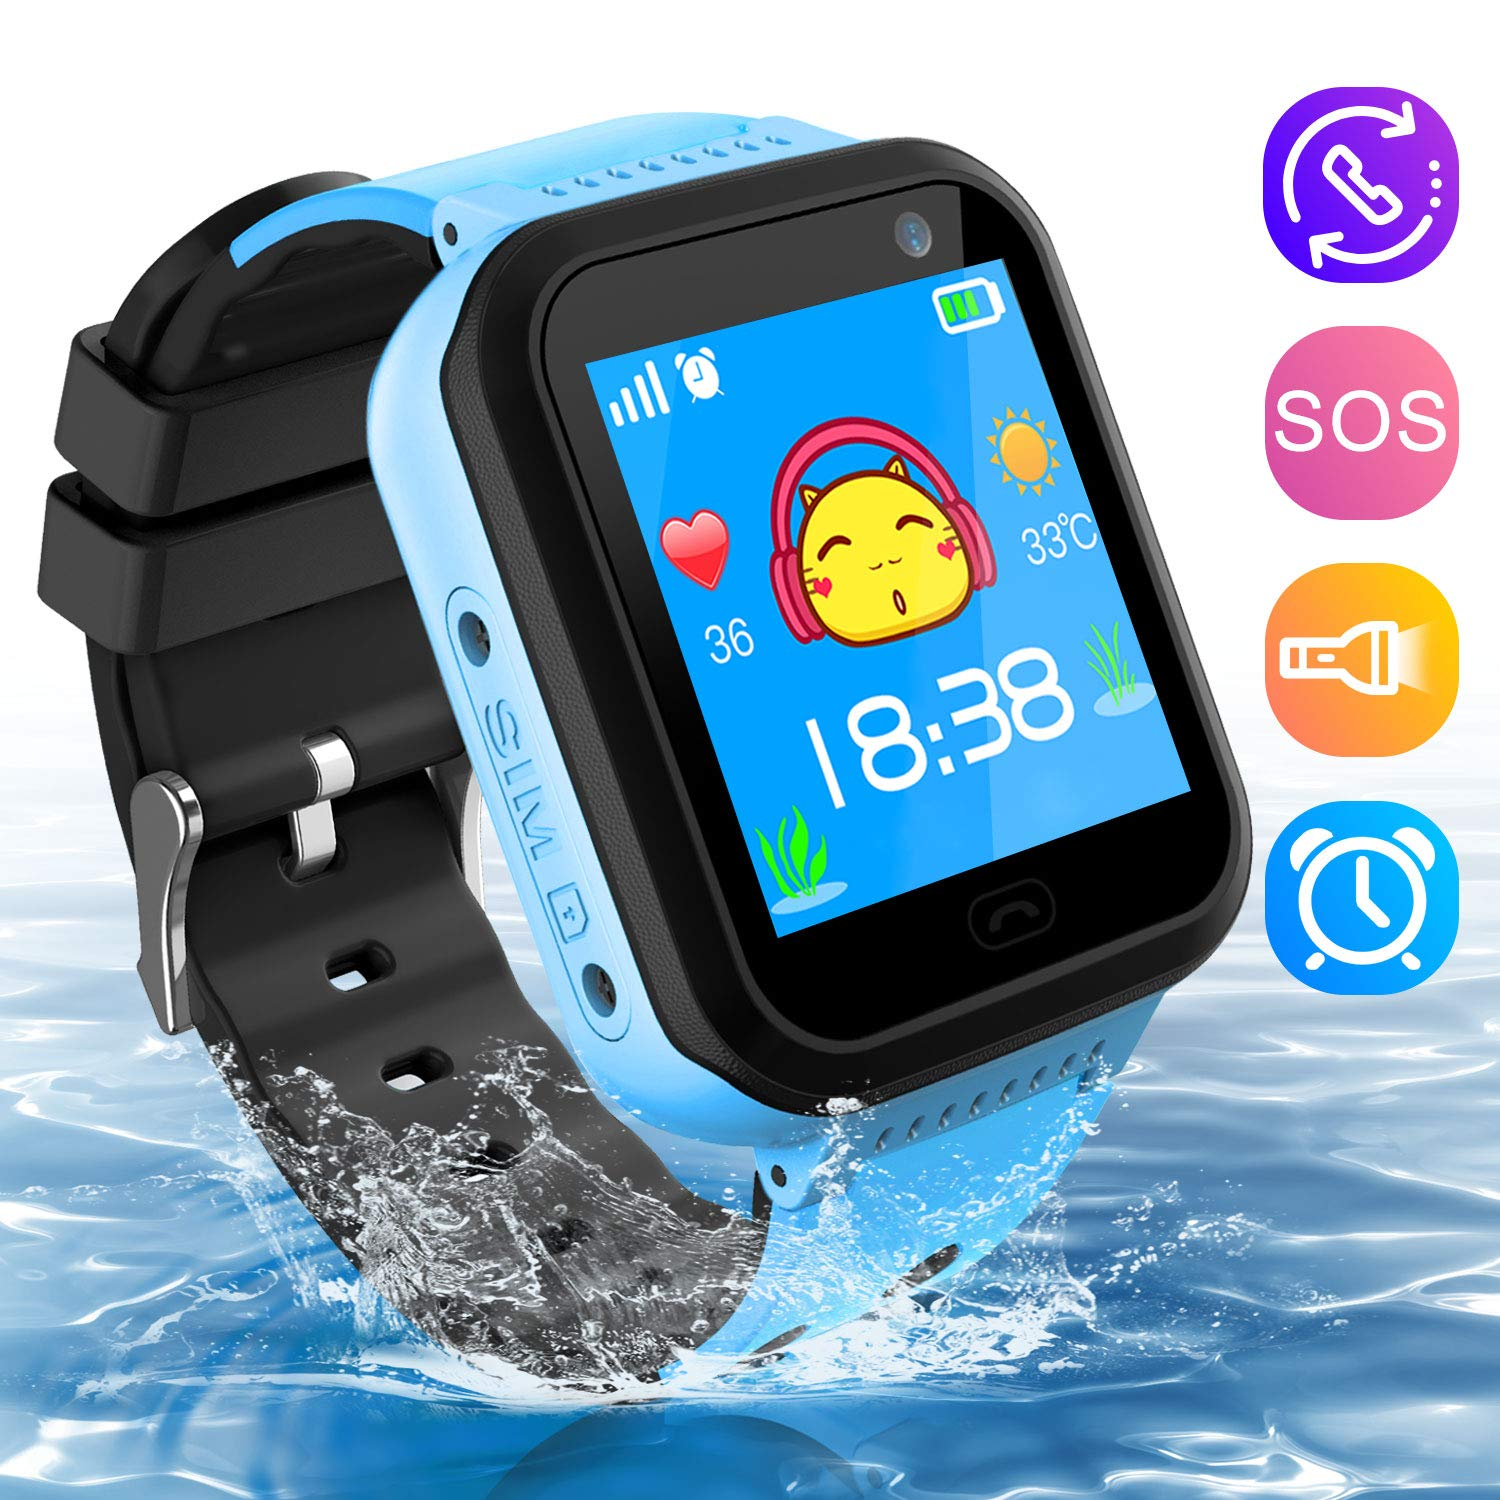 Kids Smartwatch Phone, Waterproof Kids Tracker Watch Camera Call Phone Smart Watch for Kids 3-14 Best Gift for Girls Boys (Blue)